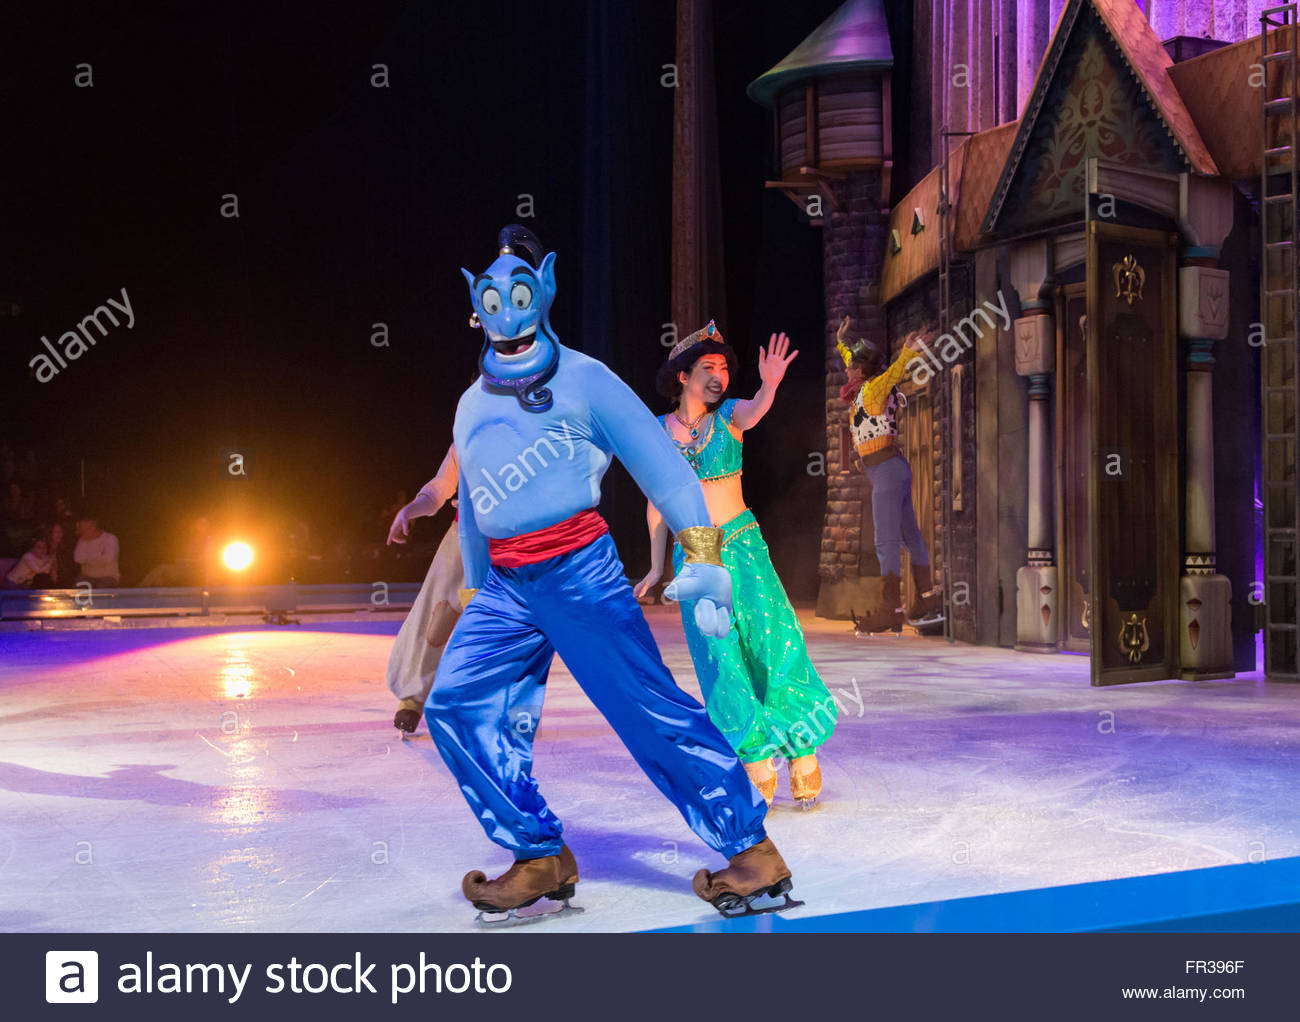 scenes from aladdin disney on ice celebrates 100 hundred years of